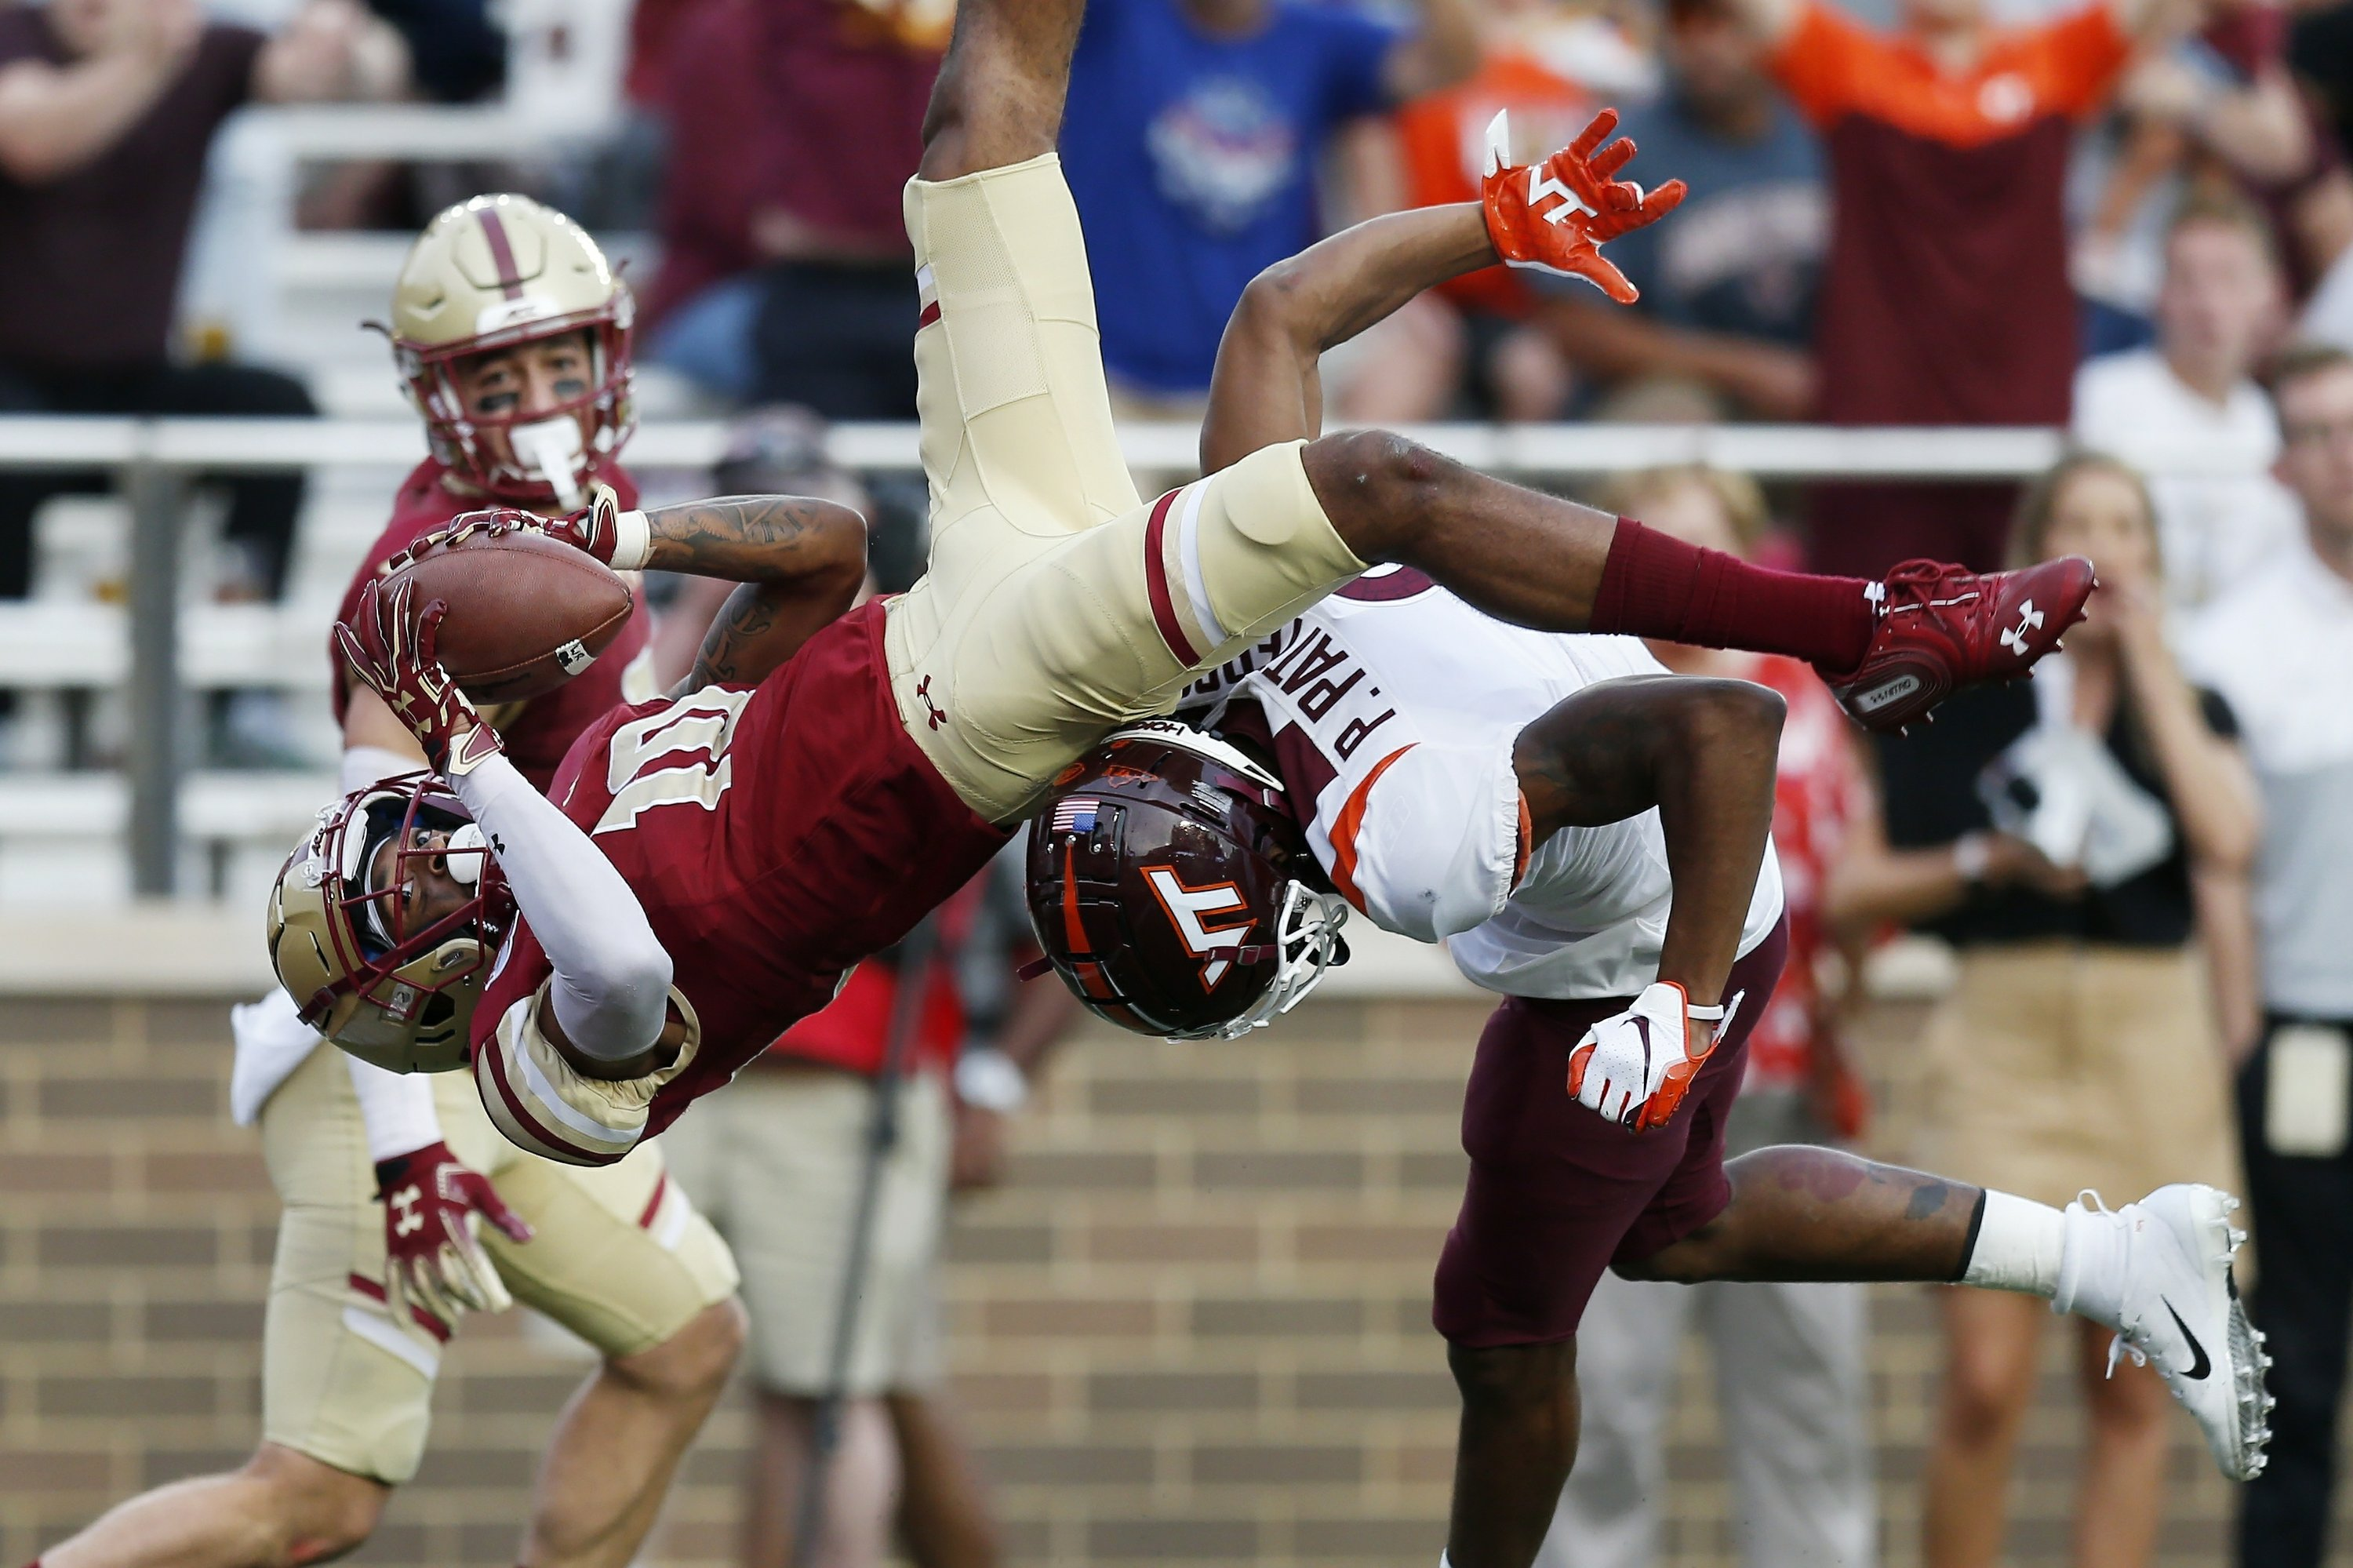 Brown's 2 TD passes and 1 run leads BC past Va  Tech 35-28